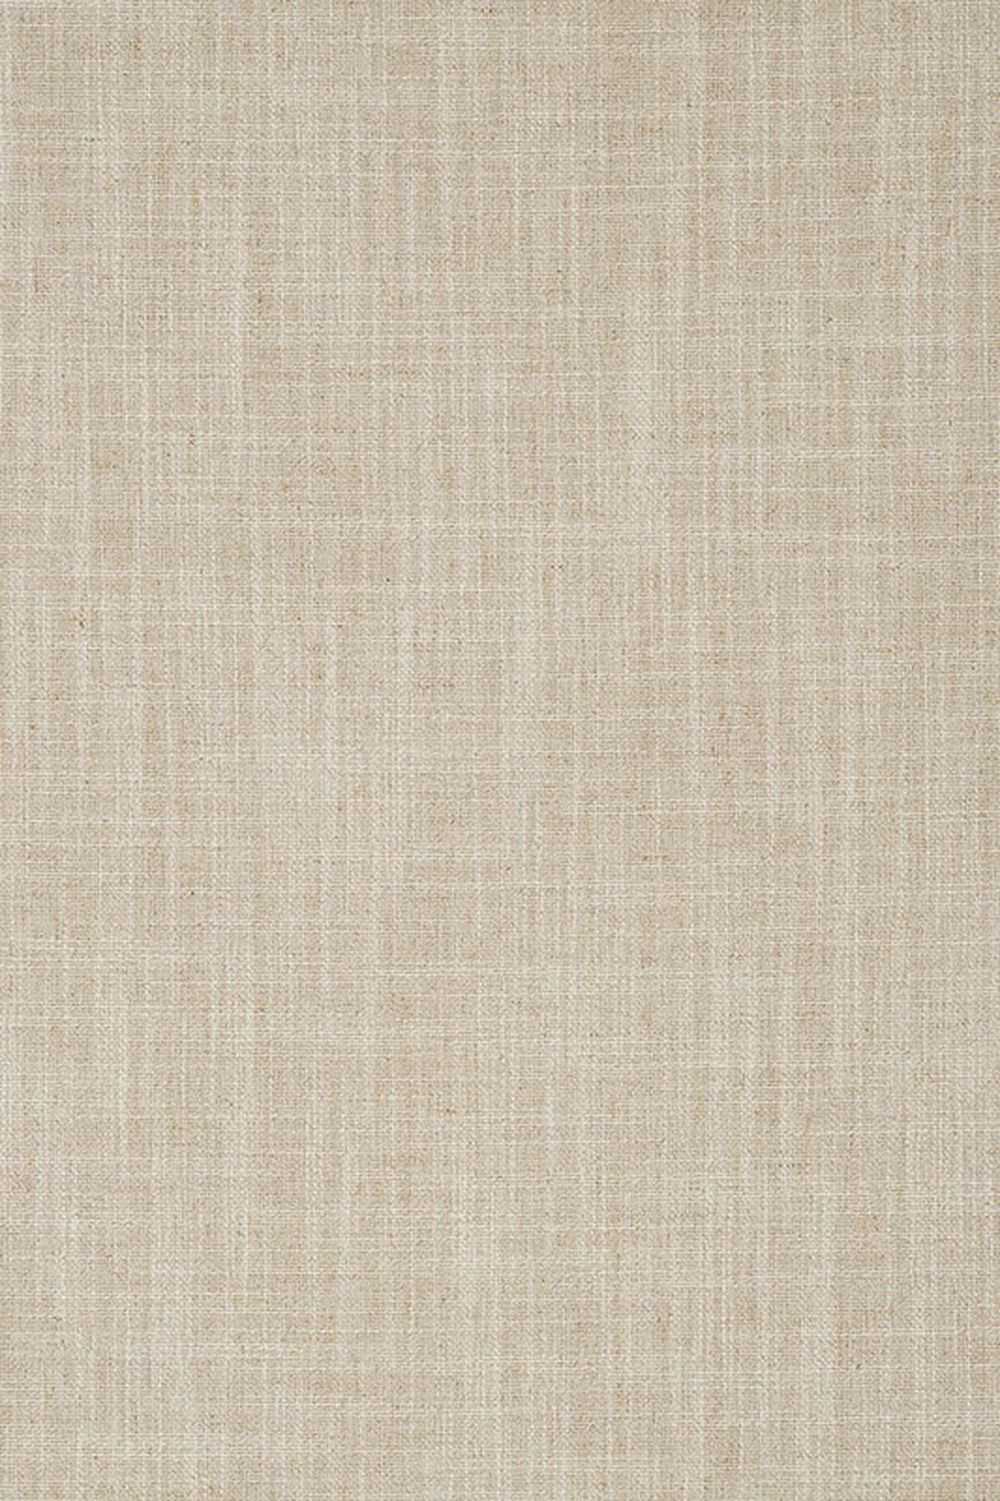 Photo of the fabric Lusk Parched swatch by Pegasus. Use for Upholstery Heavy Duty, Accessory. Style of Plain, Texture